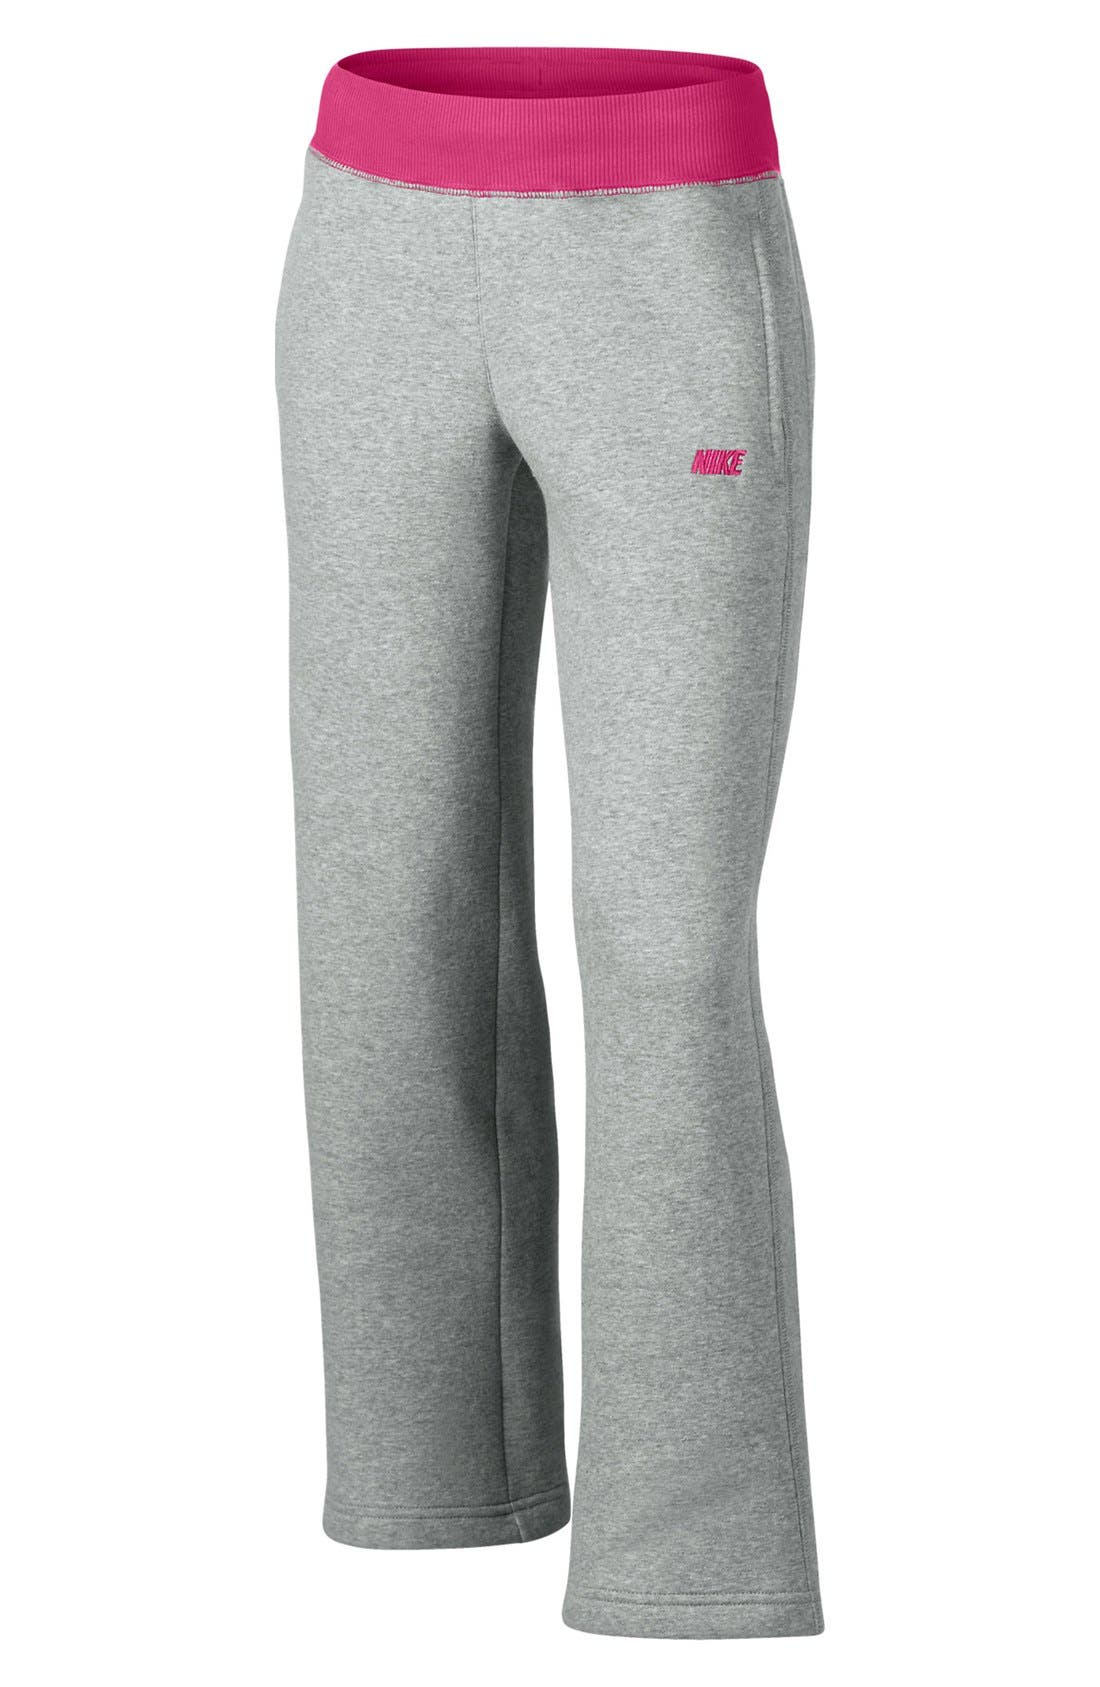 Alternate Image 1 Selected - Nike 'N40' Fleece Pants (Little Girls & Big Girls)